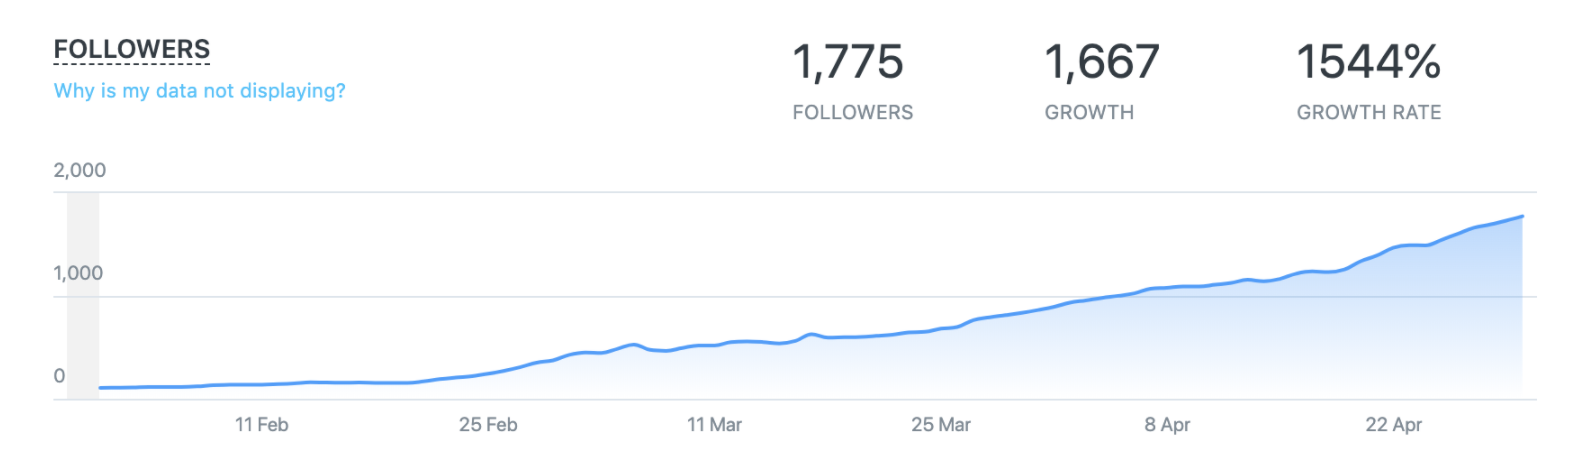 instagram case study growth stats